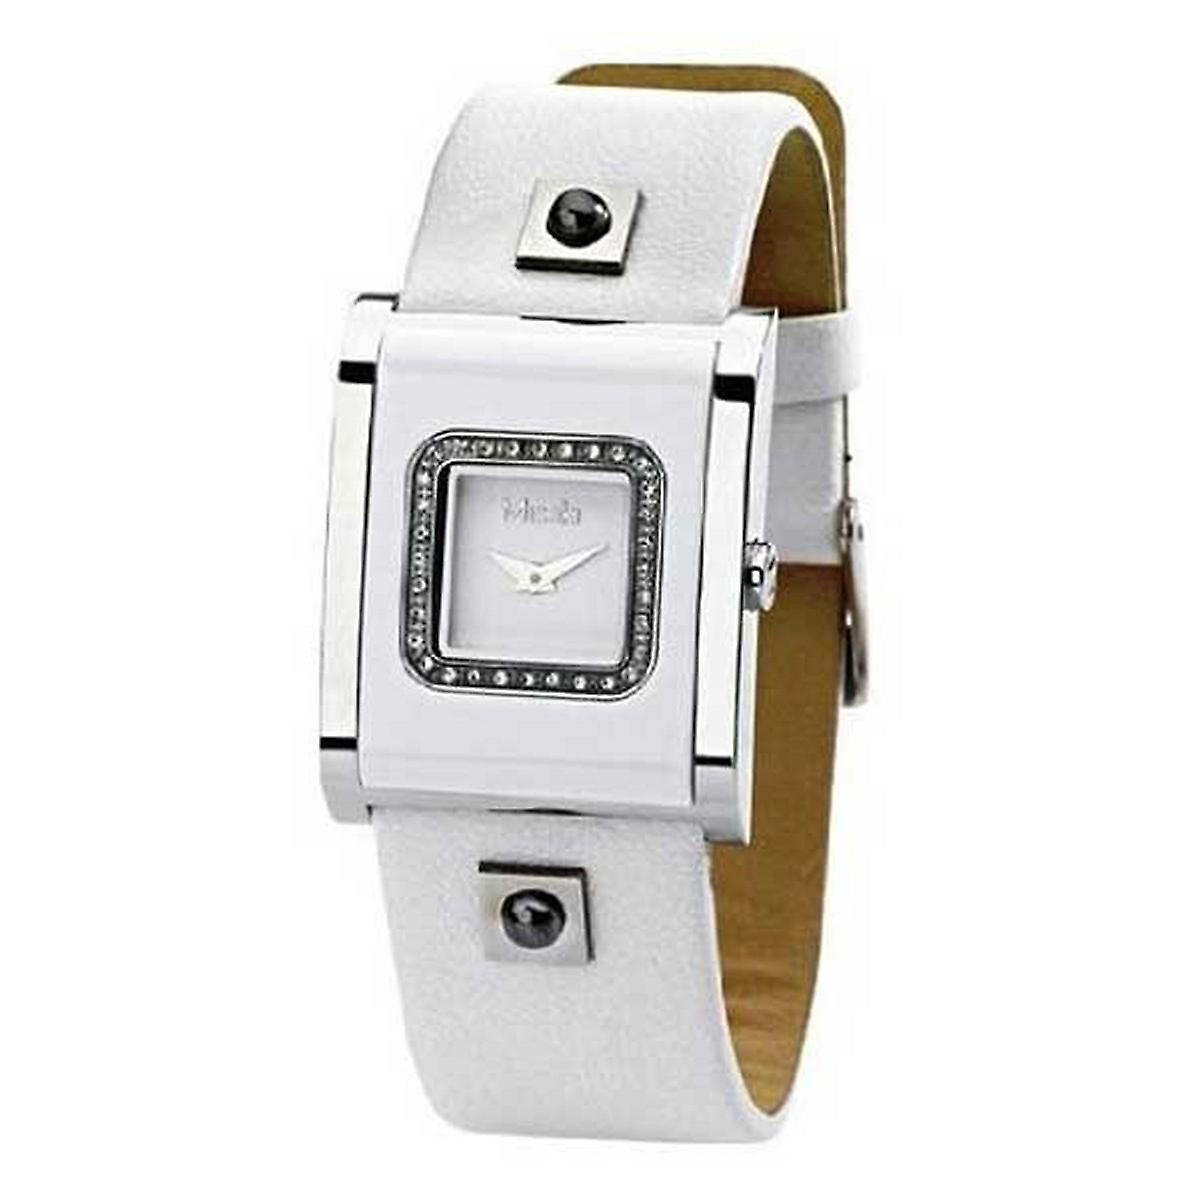 Misaki ladies watch QCRWACQUAW watch White leather strap